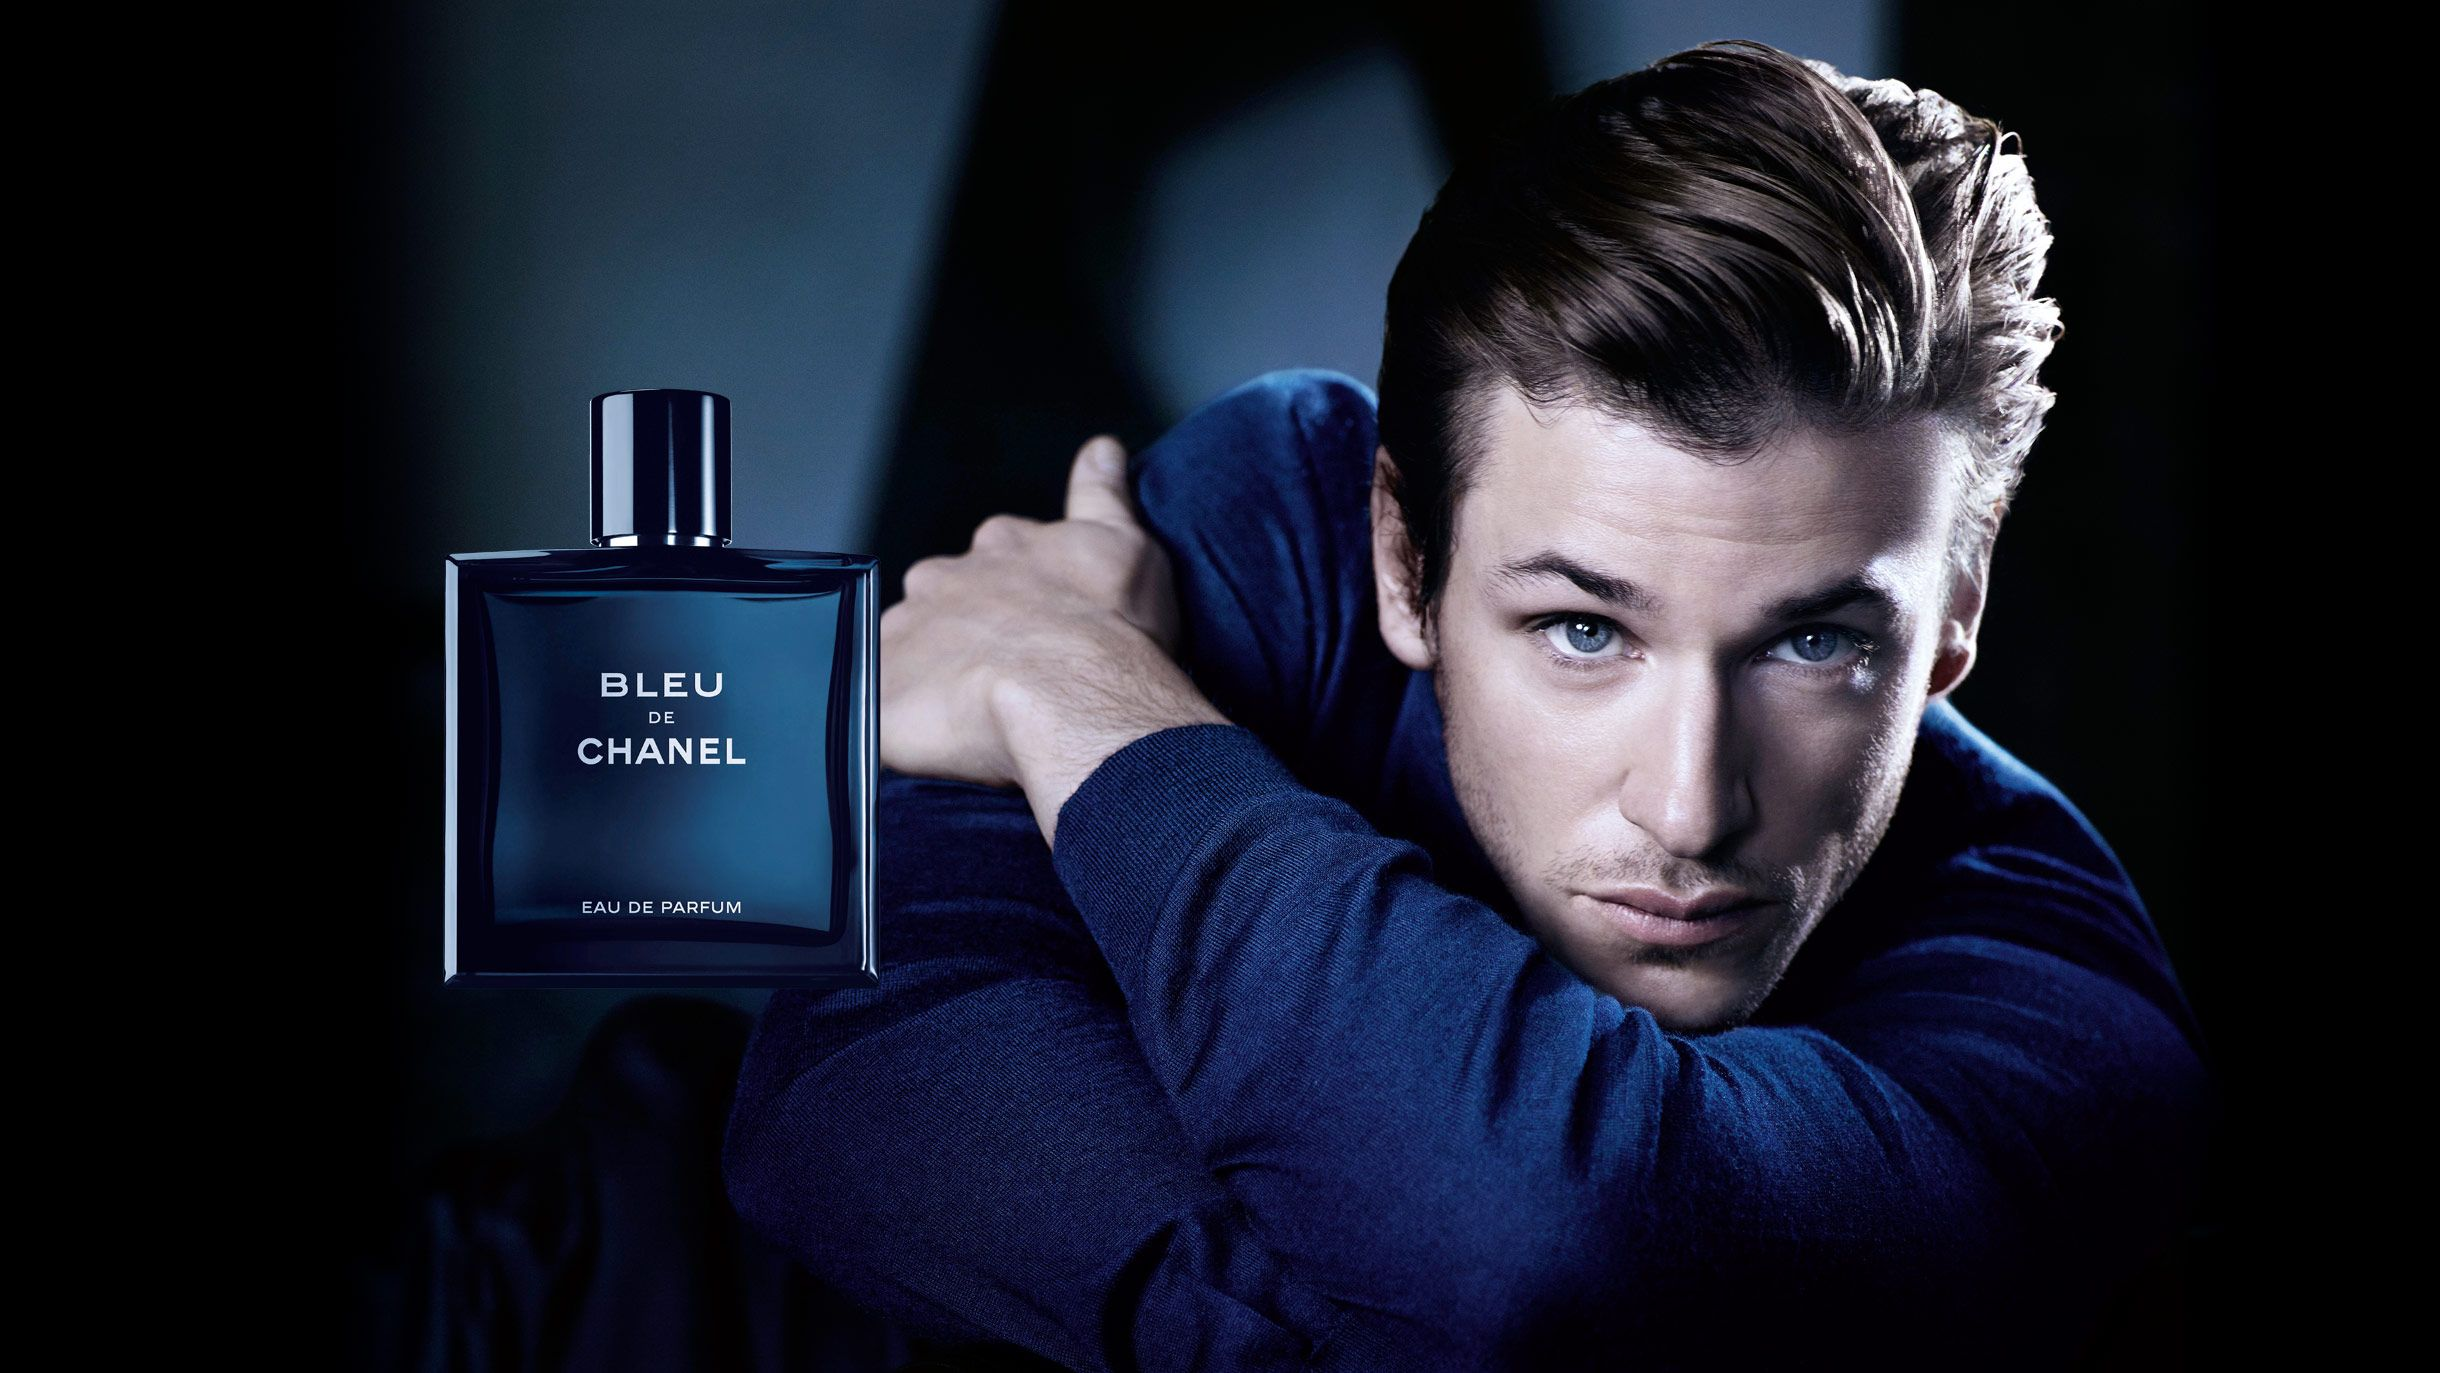 Best Deals Online - bleu de chanel commercial, OFF 70%,Buy!